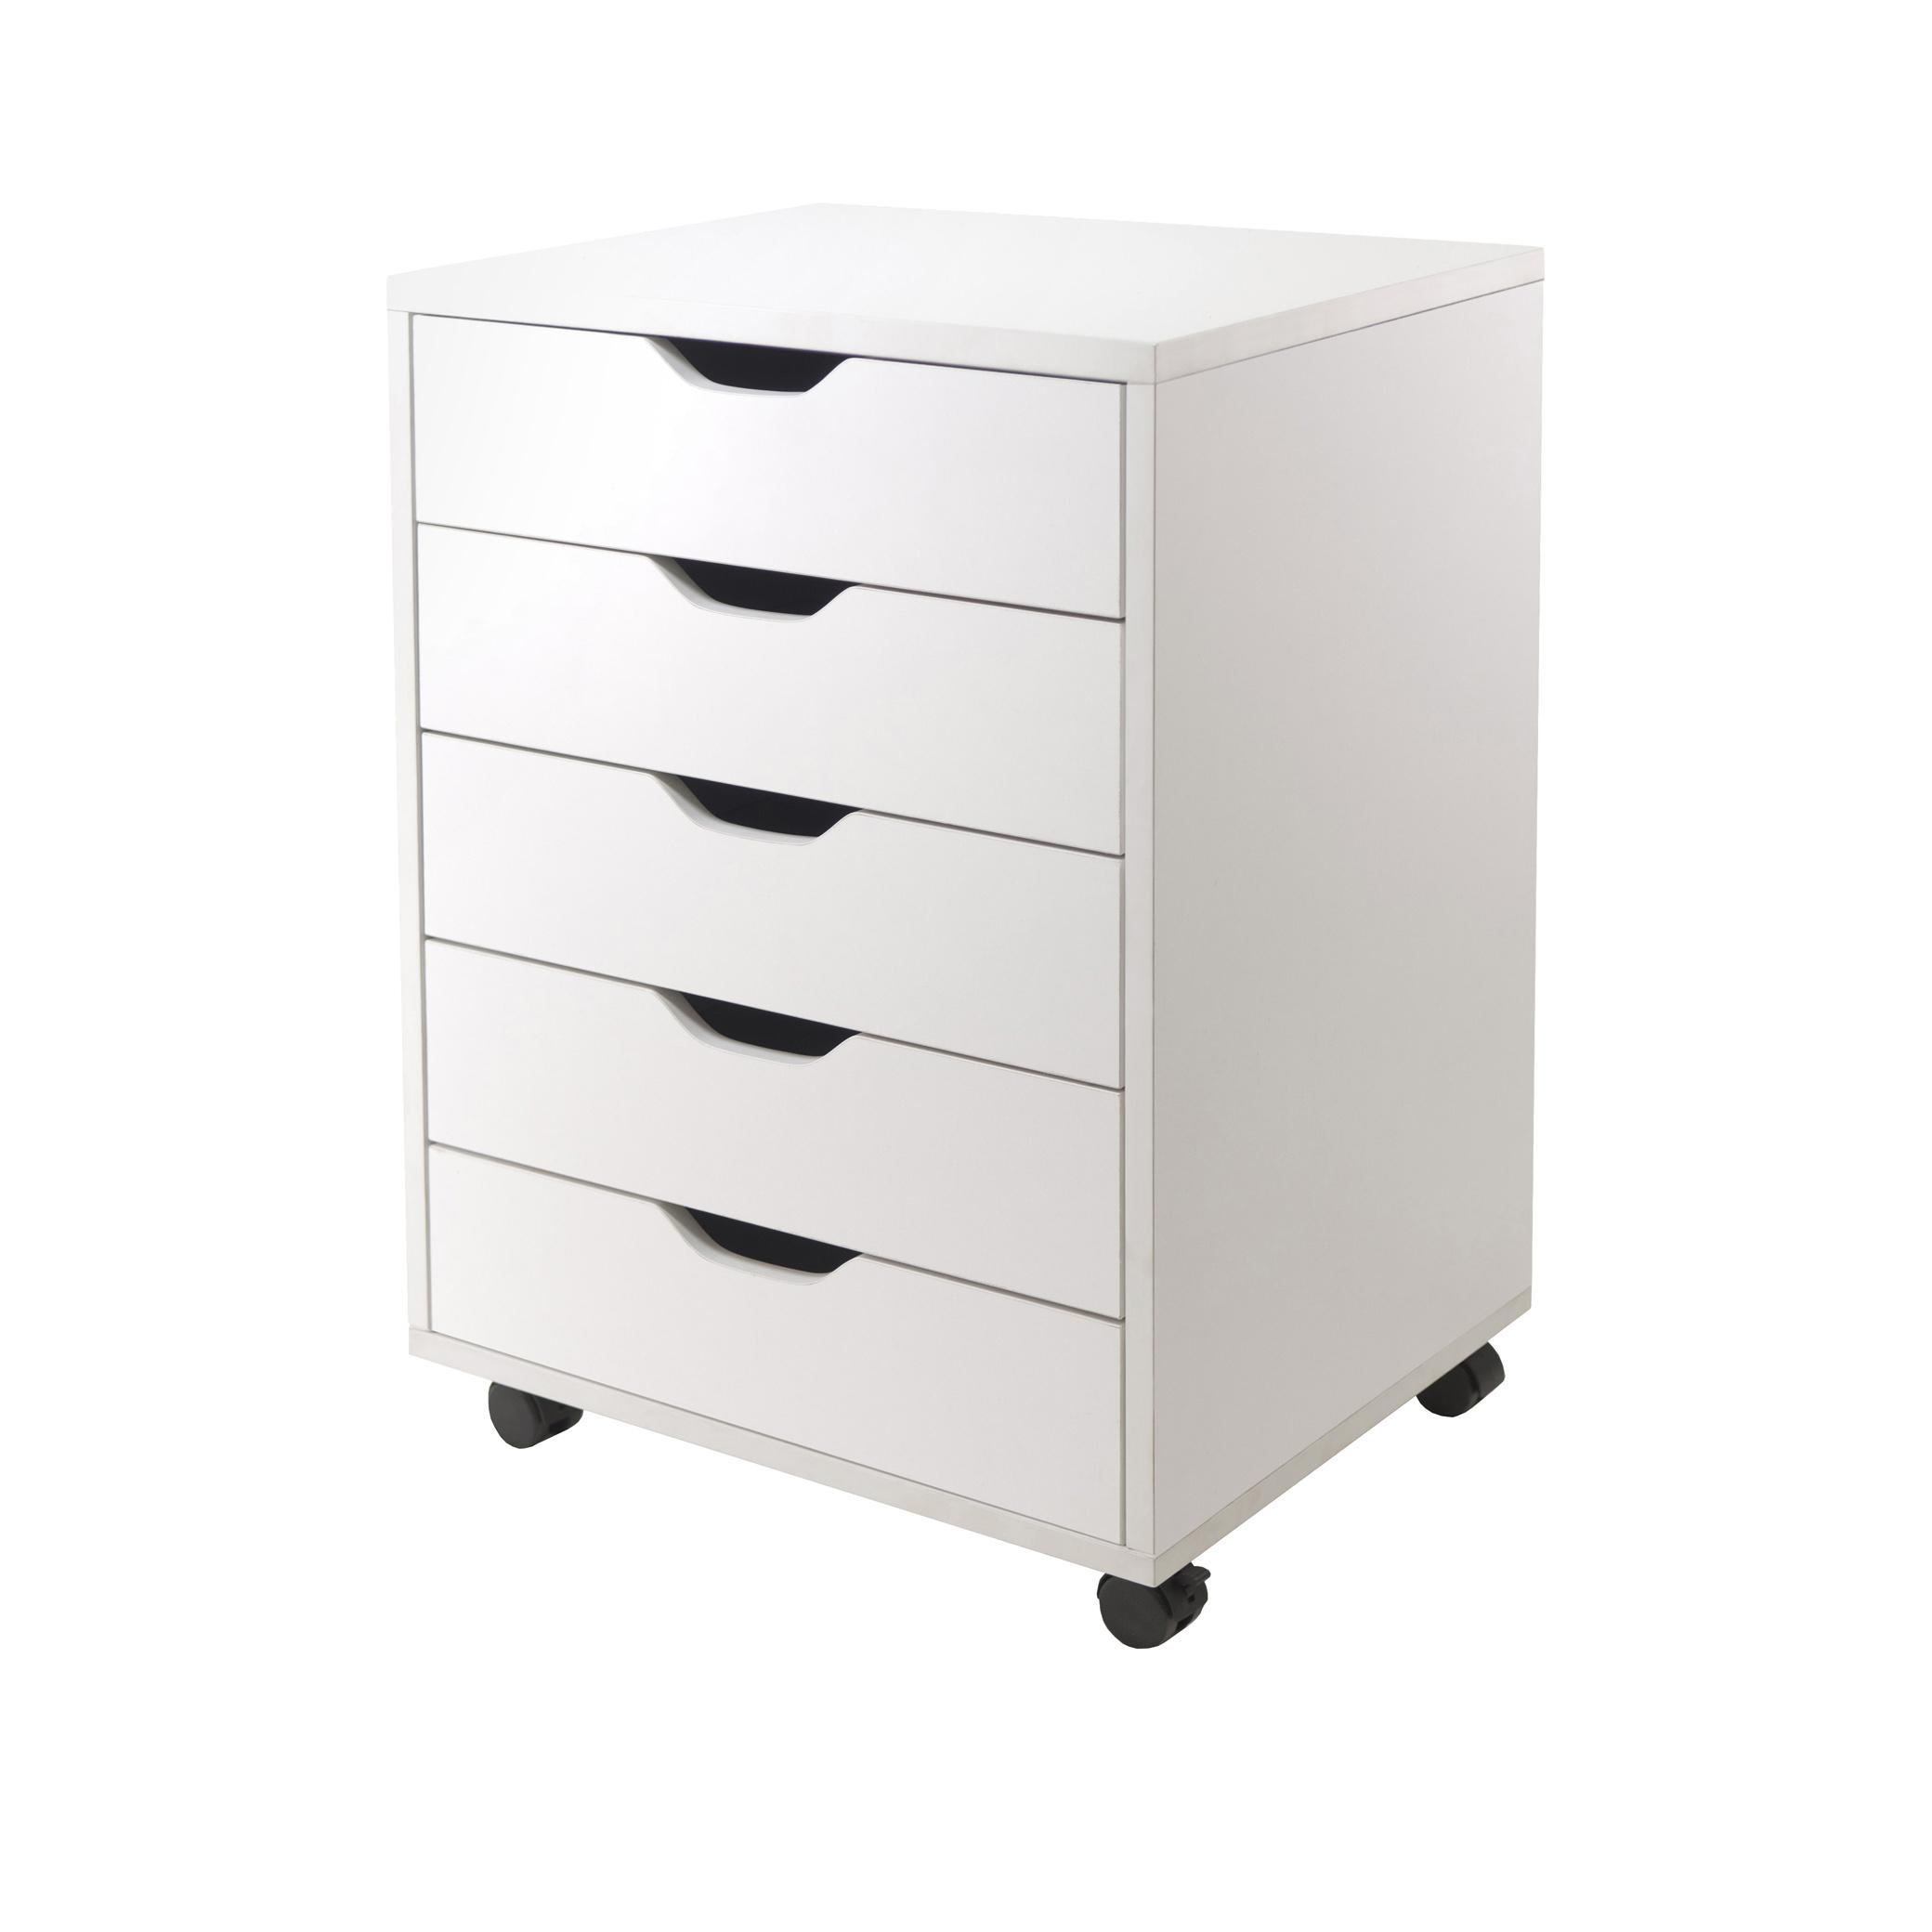 Drawer Organizers: Amazon.com: Winsome 10519 Halifax Storage/Organization, 5